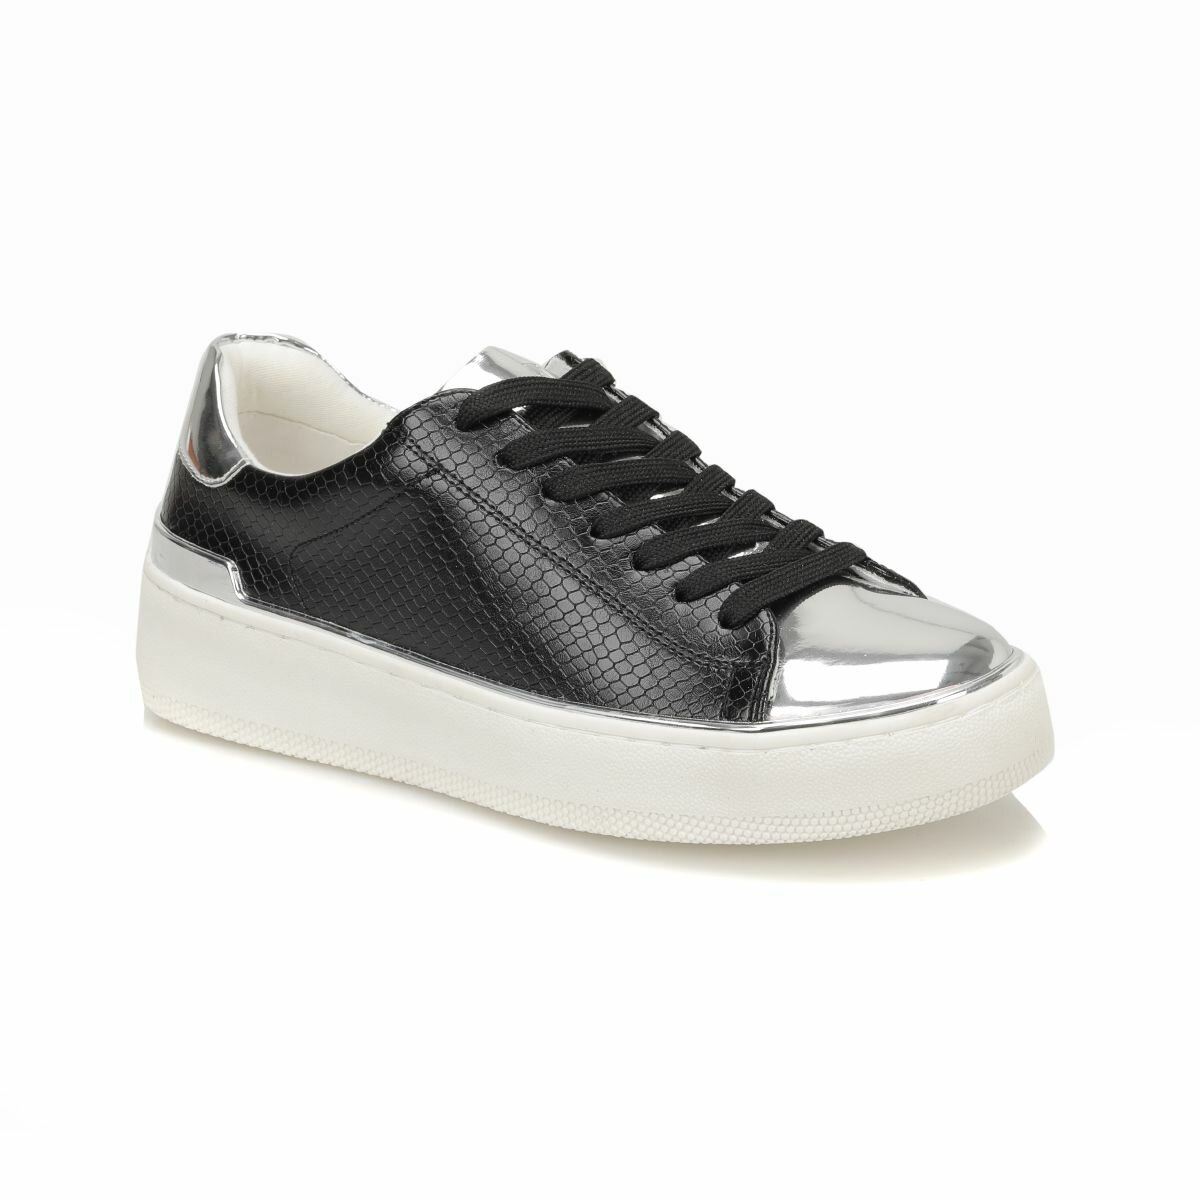 FLO PONY Black Women 'S Sneaker Shoes LUMBERJACK